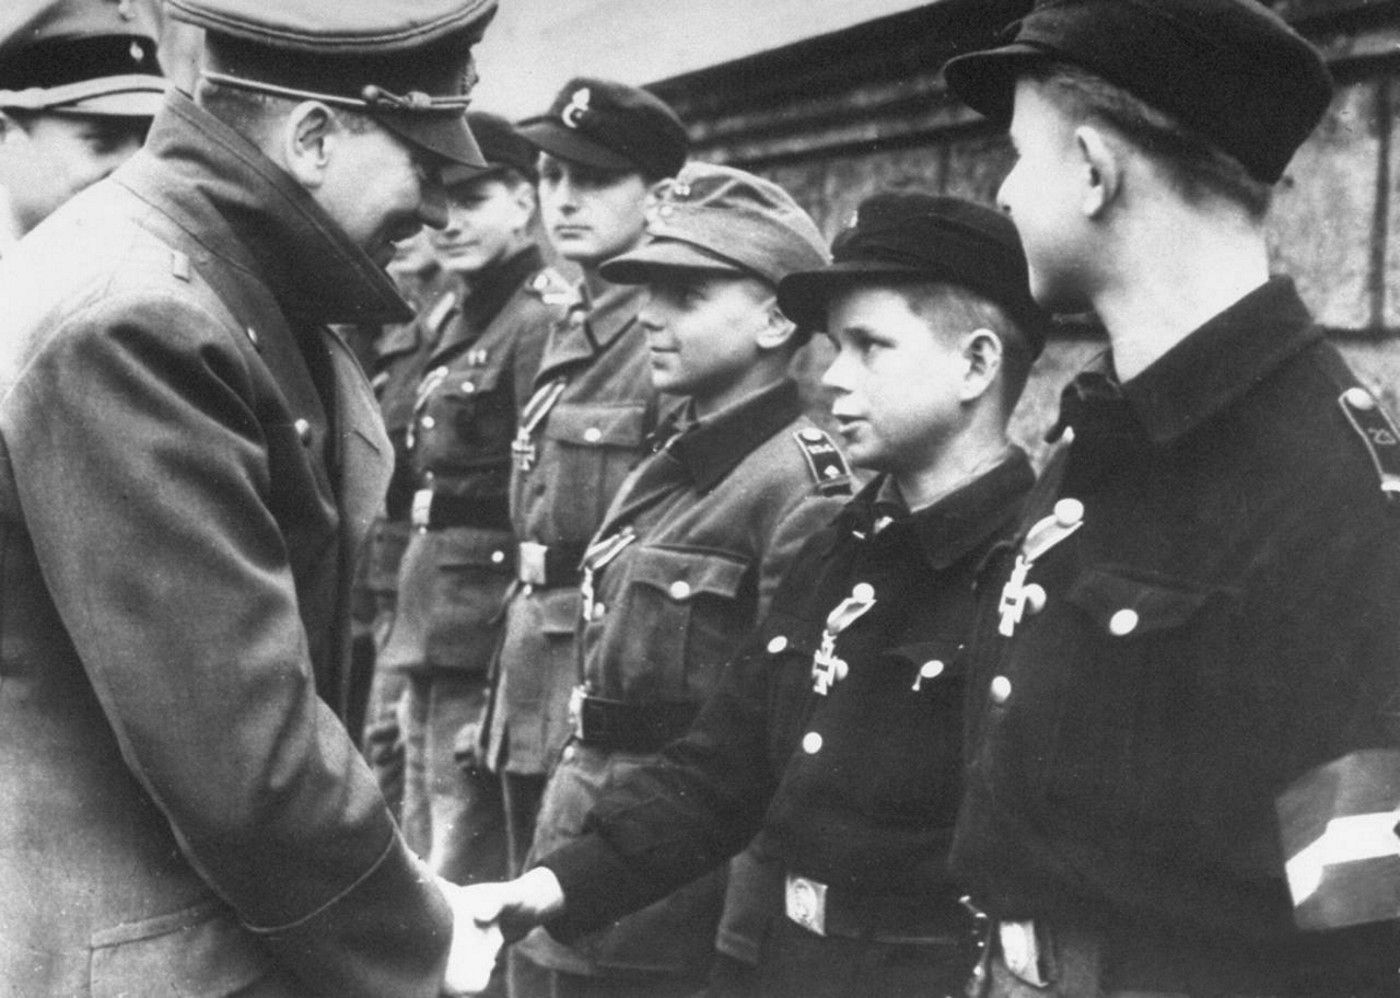 Roughly a month before he committed suicide, Hitler holds his last awards ceremony in the garden of the chancellery. The recipients are all Hitler Youth members. Hitler is shaking the hand of 12-year old Alfred Czech. To the latter's right is 16-year old Wilhelm Hubner, already a photo star thanks to receiving a medal from Goebbels as well. Both Czech and Hubner have been awarded the Iron Cross 2nd Class.